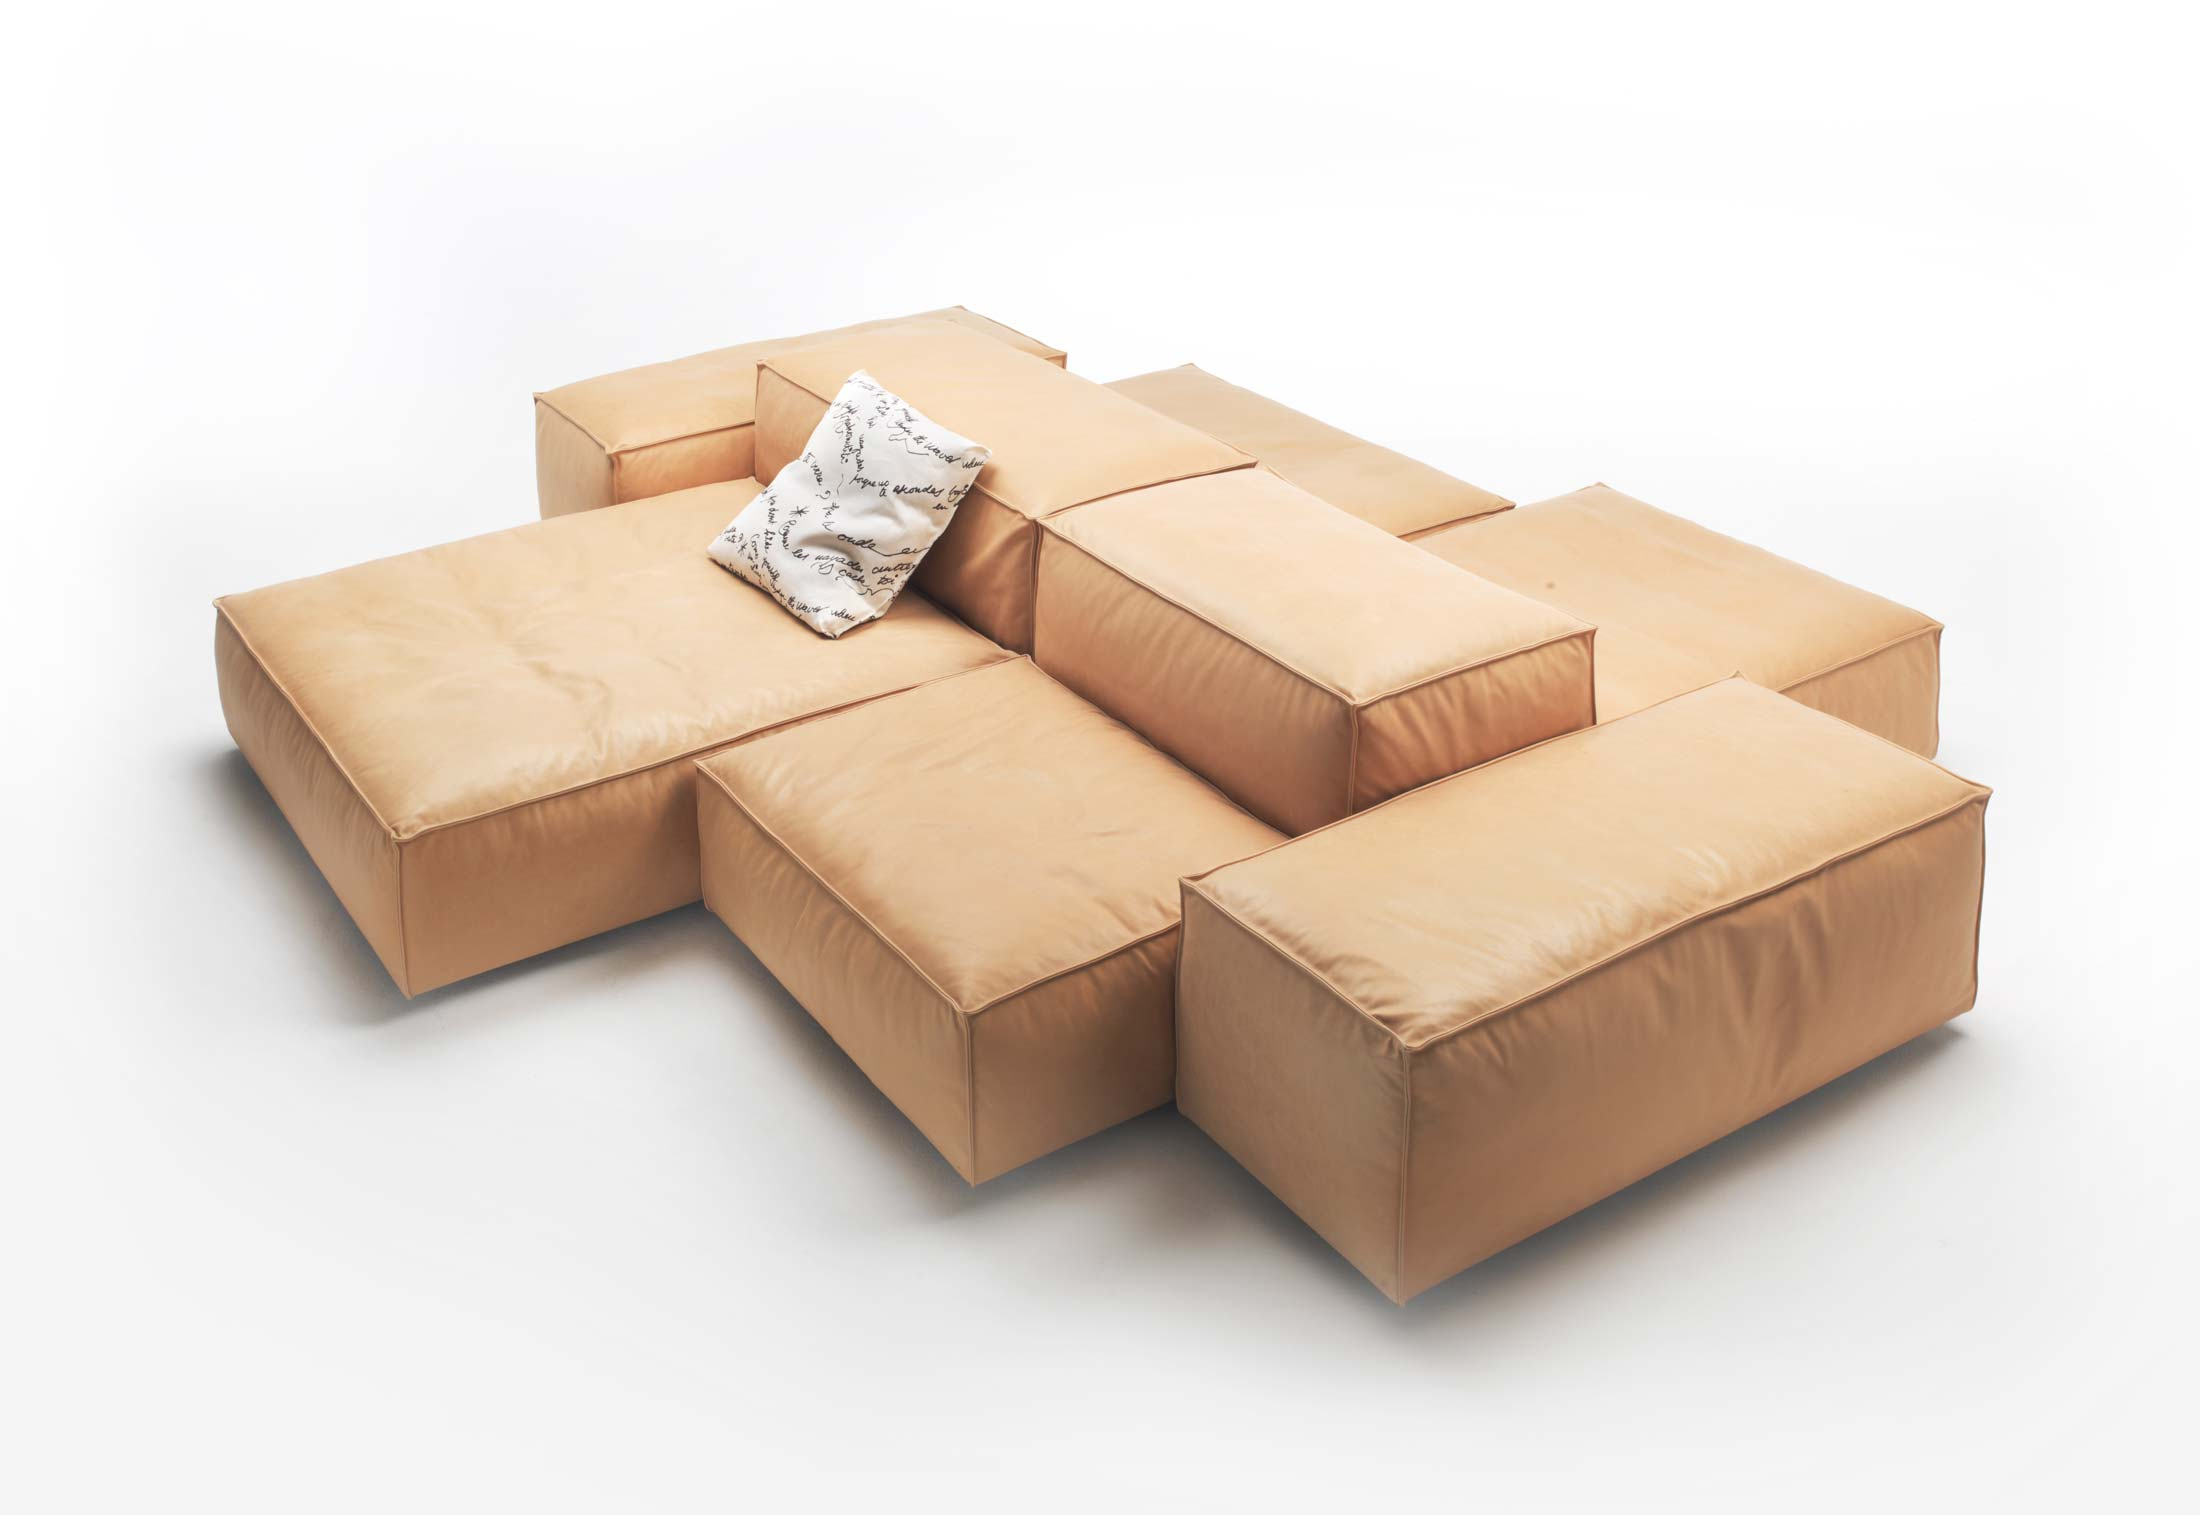 Extrasoft indoor and outdoor sofa by Living Divani | STYLEPARK